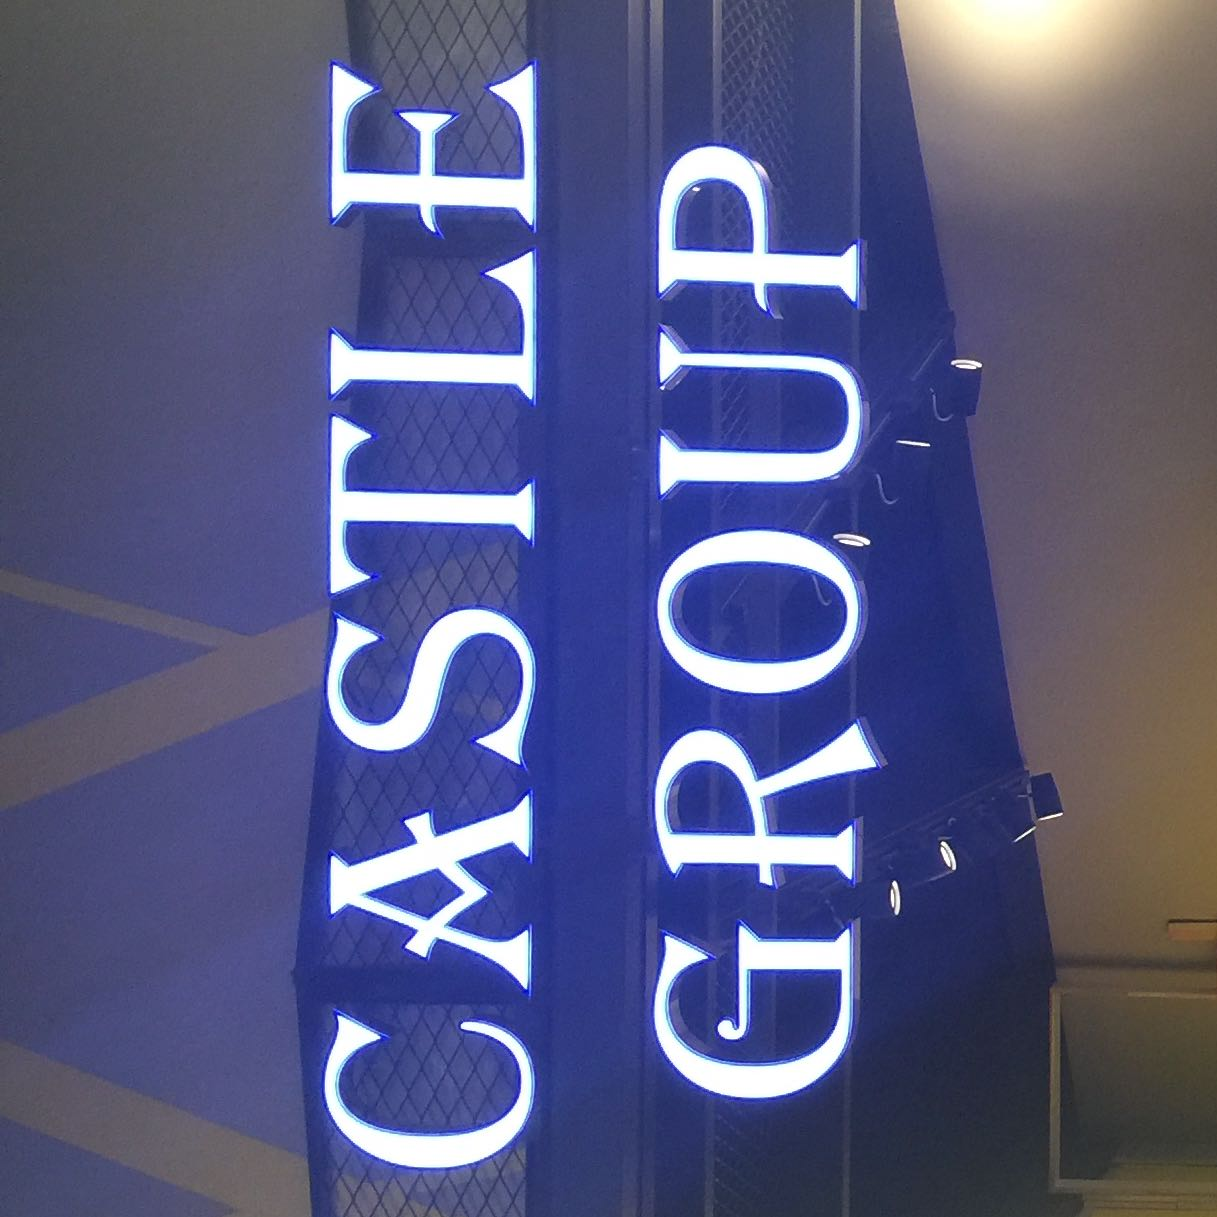 cgcastlegroup